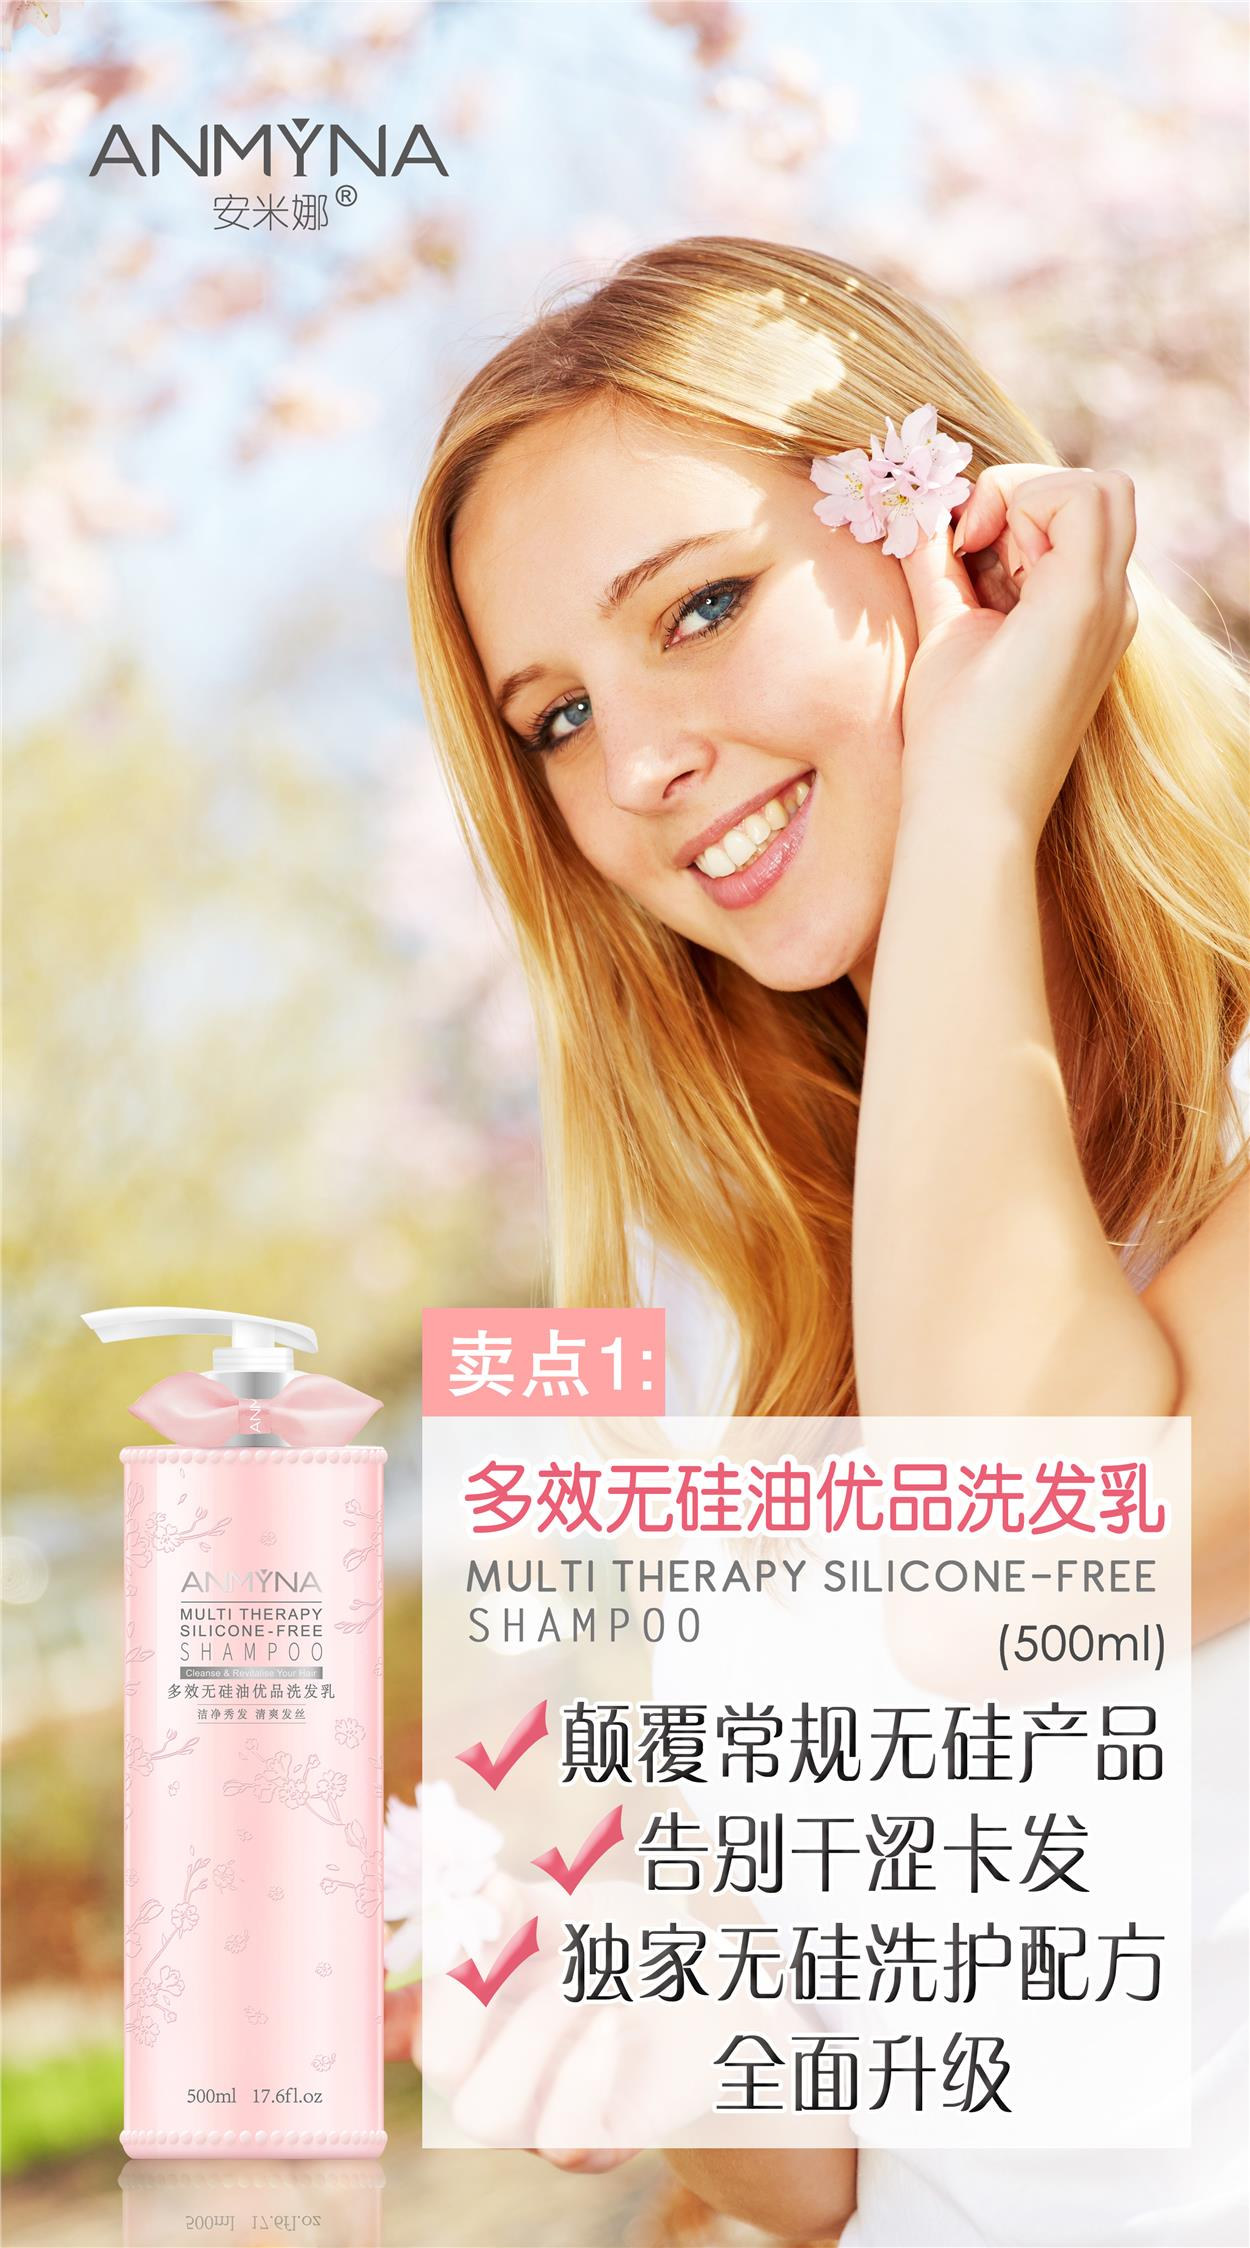 ANMYNA Multi Therapy Silicone-Free Shampoo + Hair Essence 安..